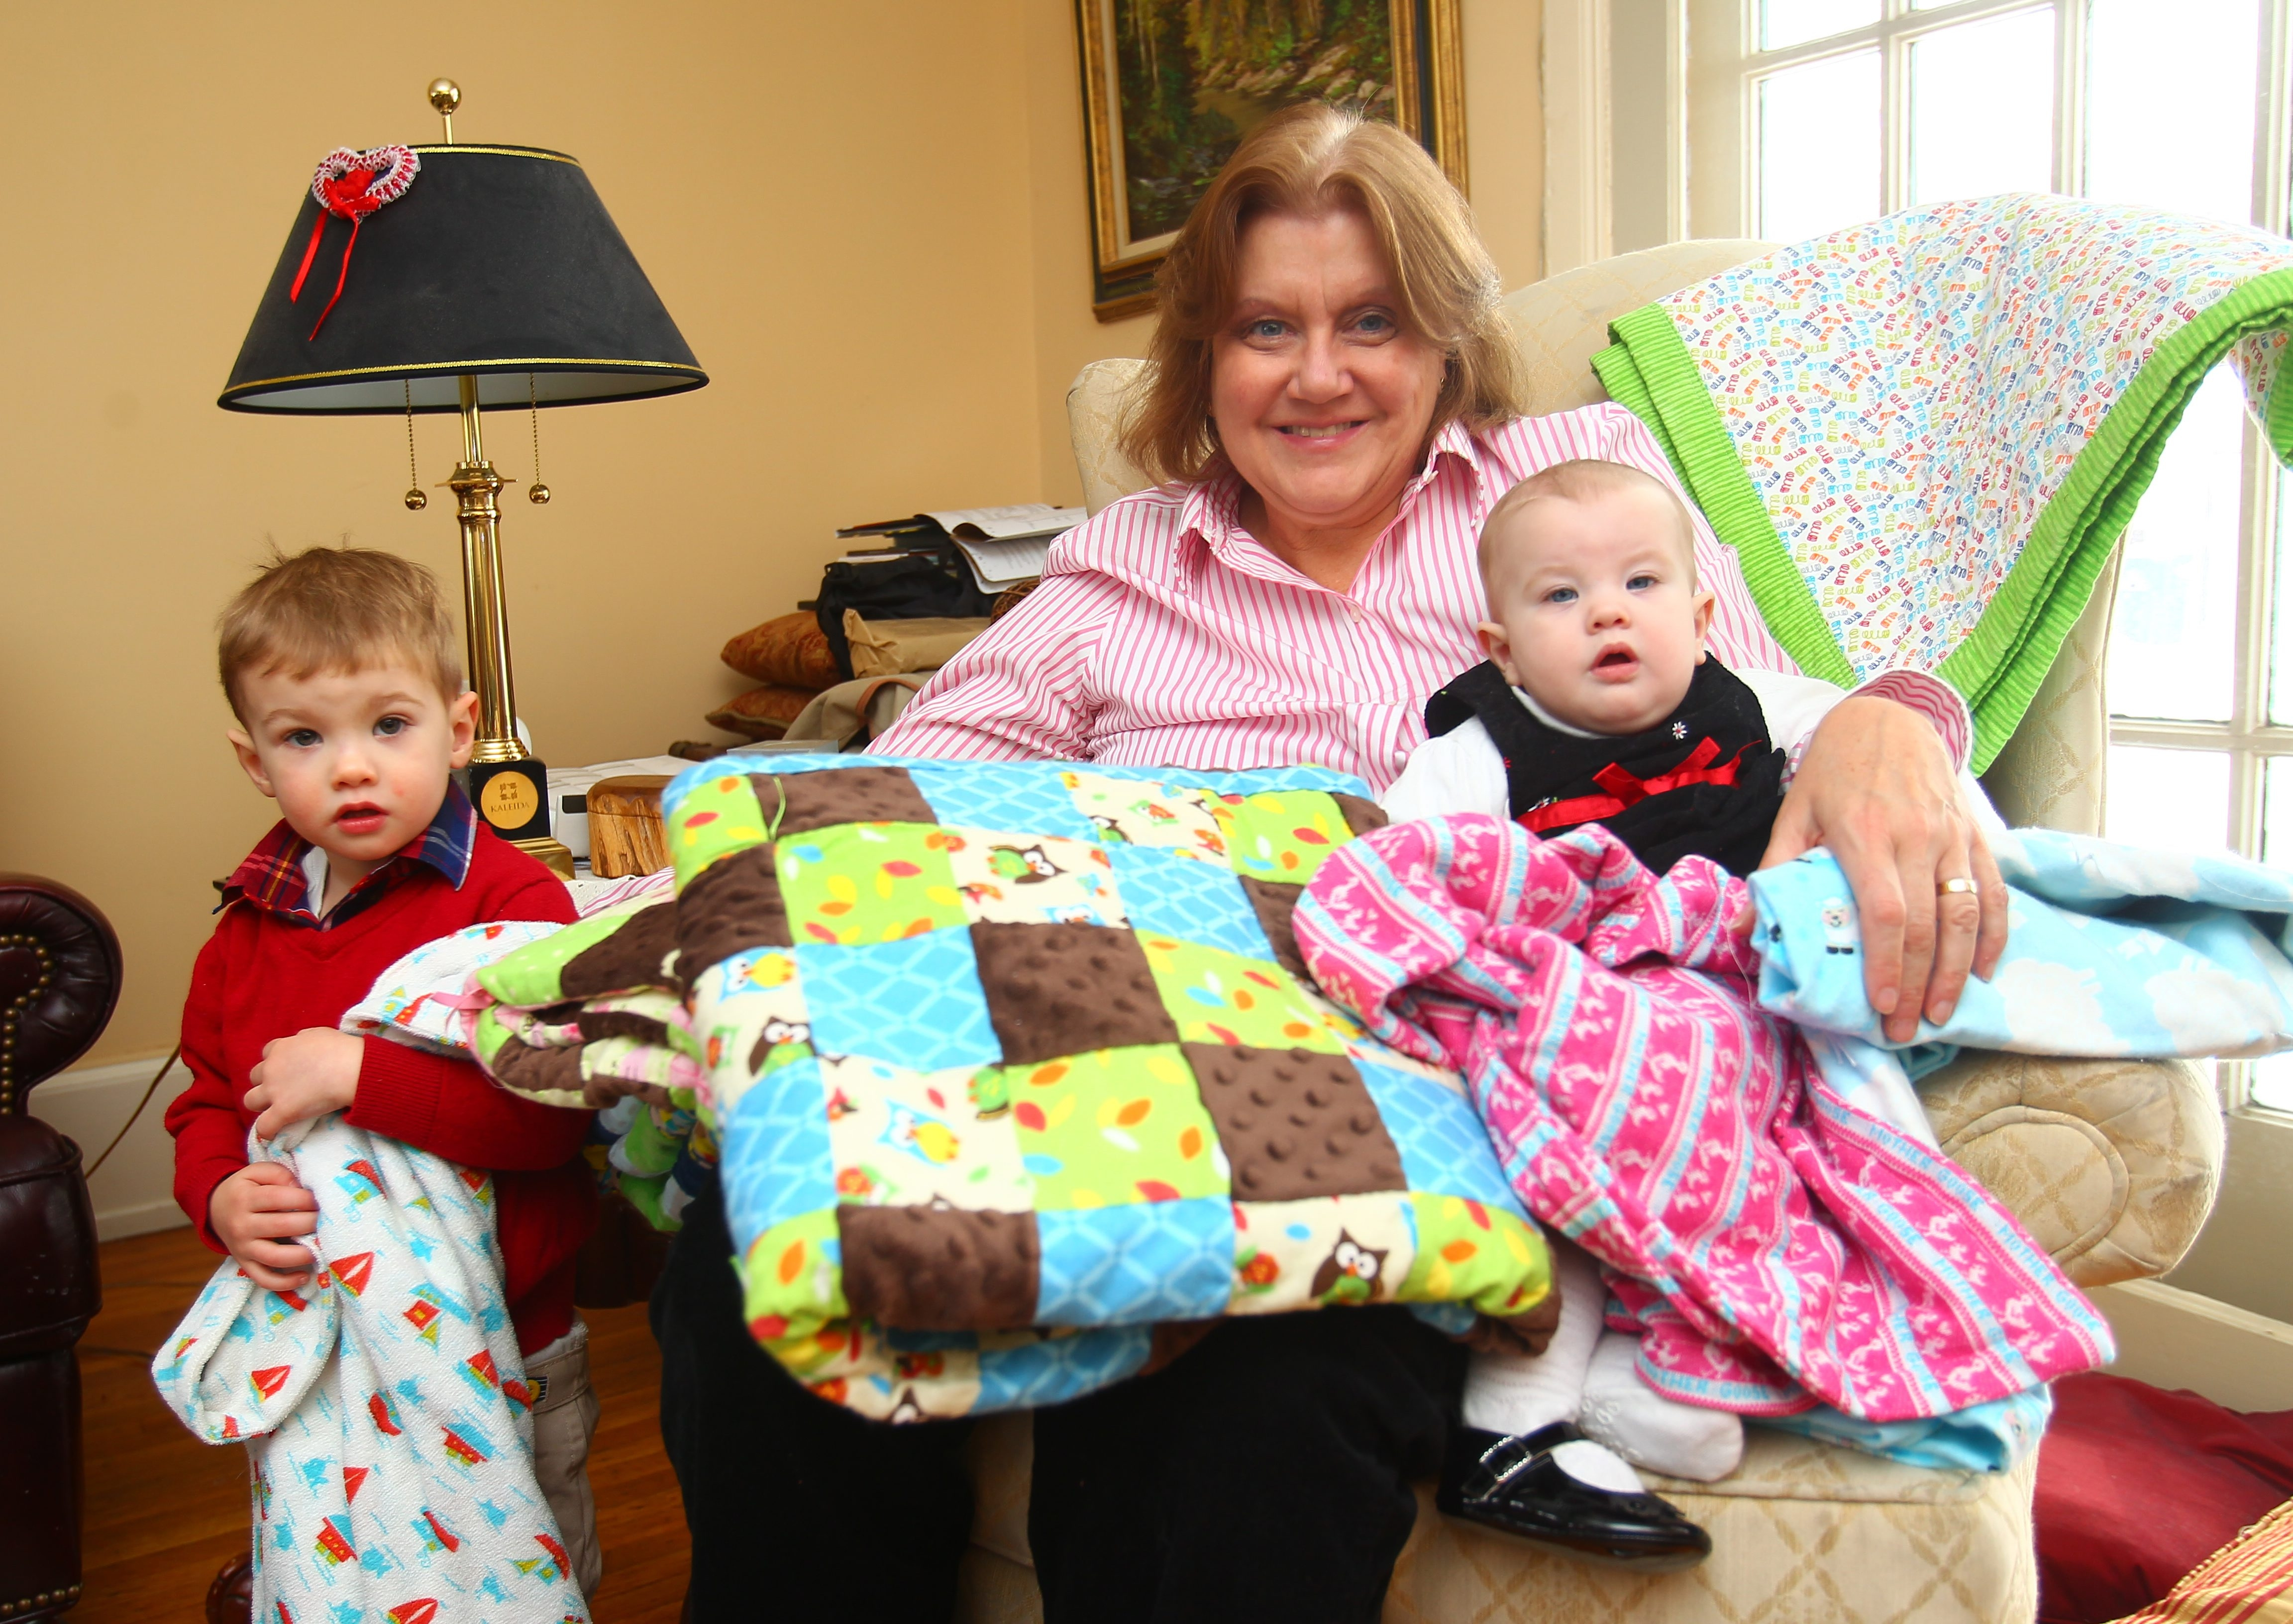 Pamela Riester shows off her grandchildren, Declan Beecher, 2, and Nora Beecher, 7 months, and a few of the 126 blankets she is giving to Project Linus. The blankets will be donated to children in need.